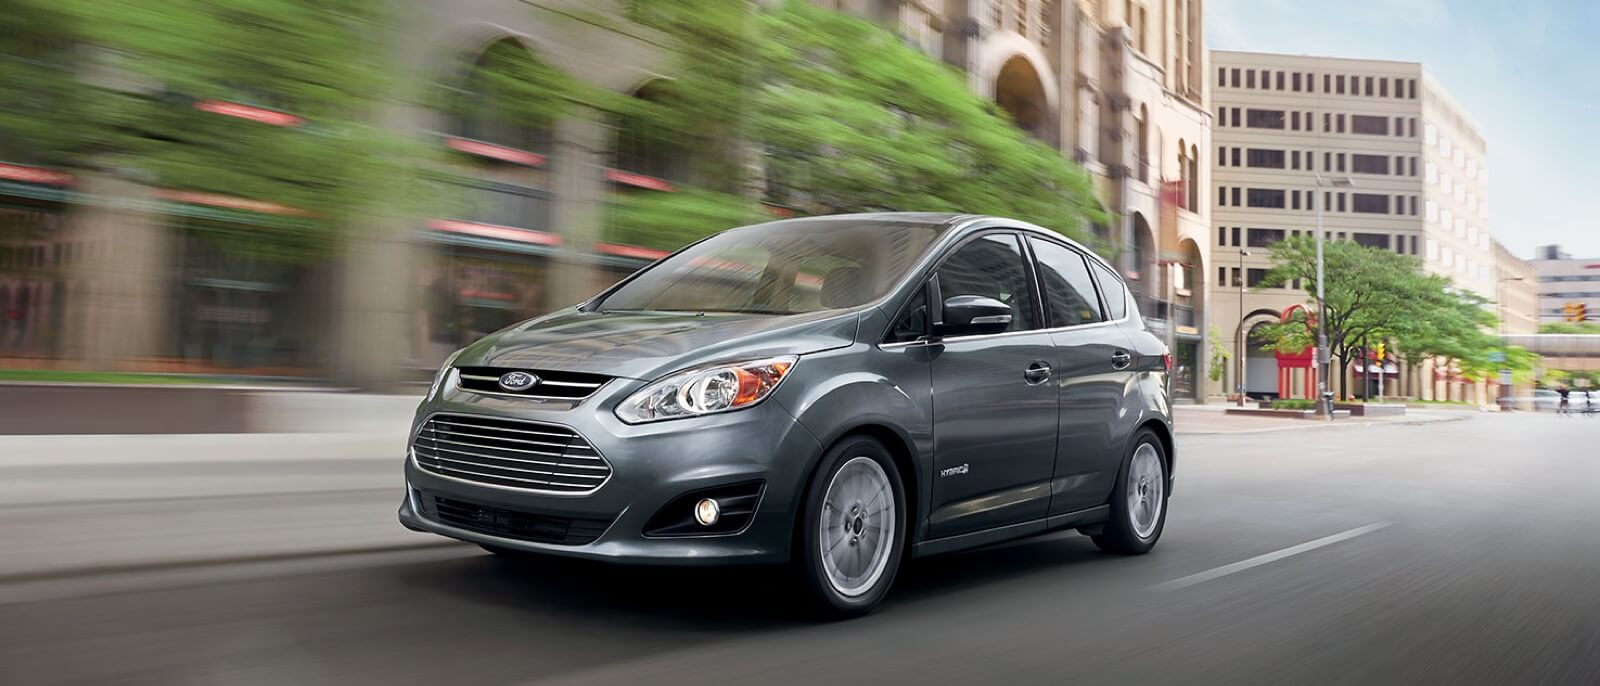 2016 Ford C-MAX Hybrid on the road